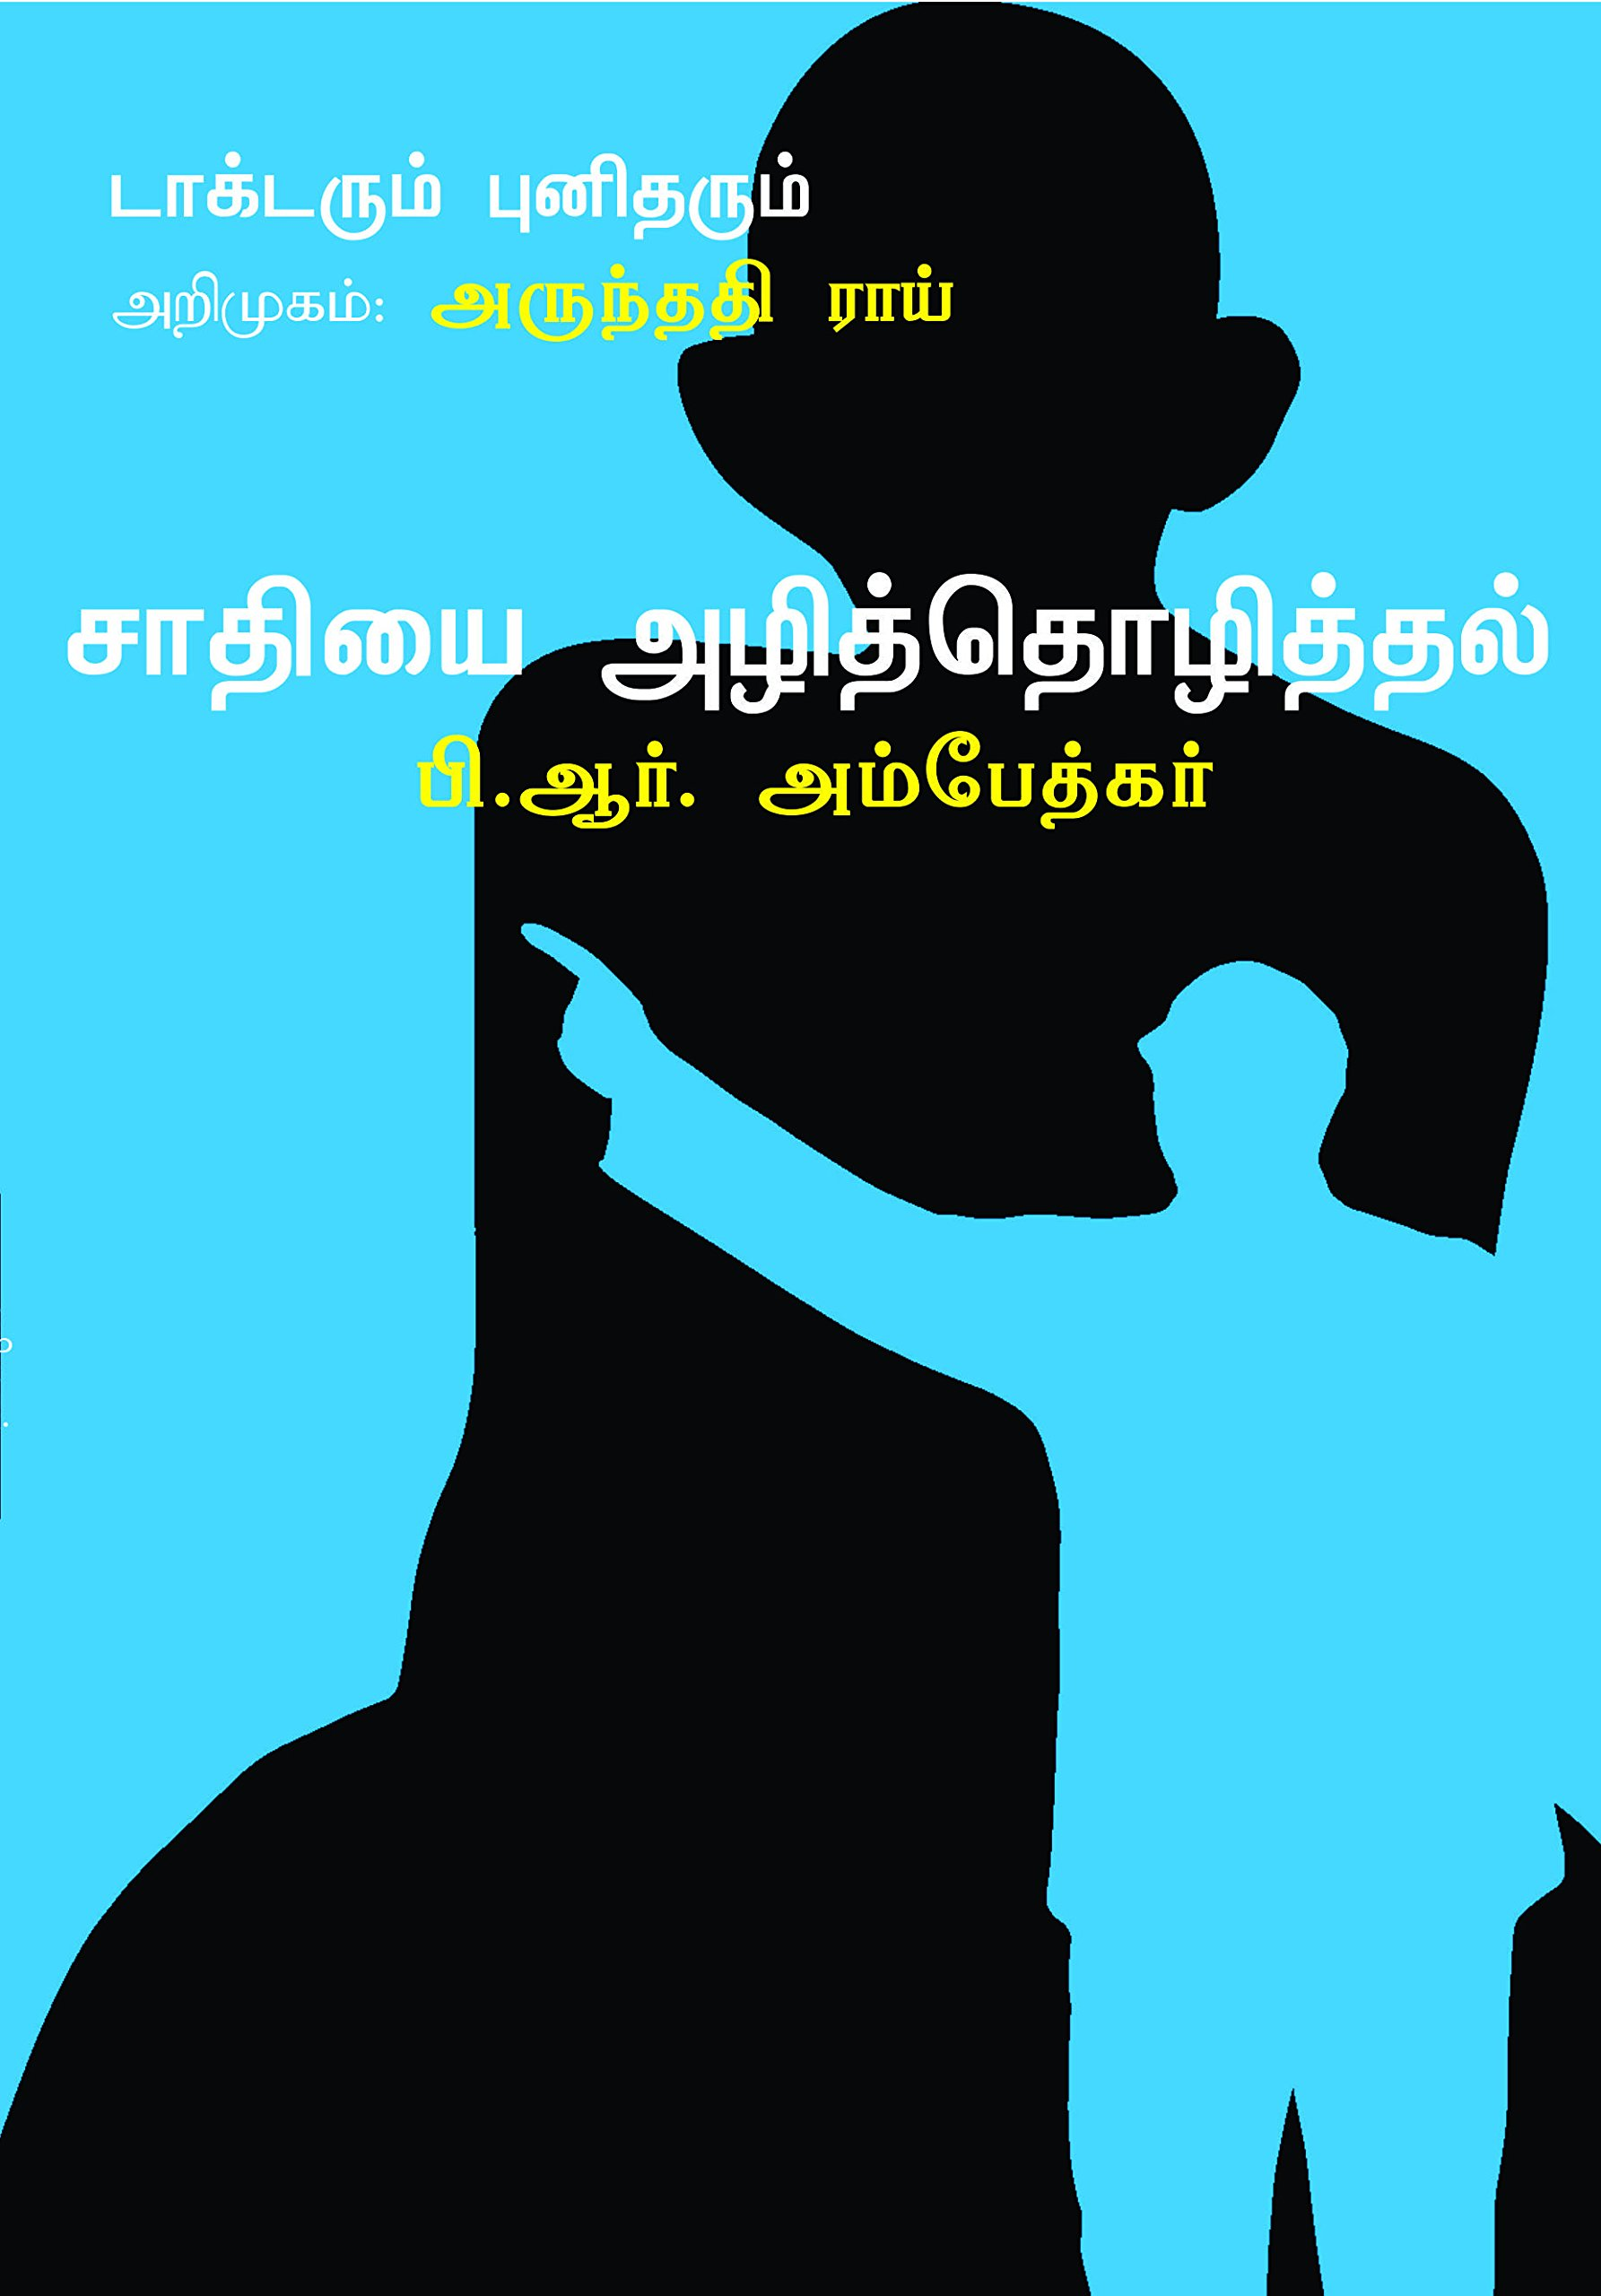 Buy Caatiyai Azhittozittal Tamil Translation Of Annihilation Voucher Premium Illustration By Suba Caste Essays Book Online At Low Prices In India